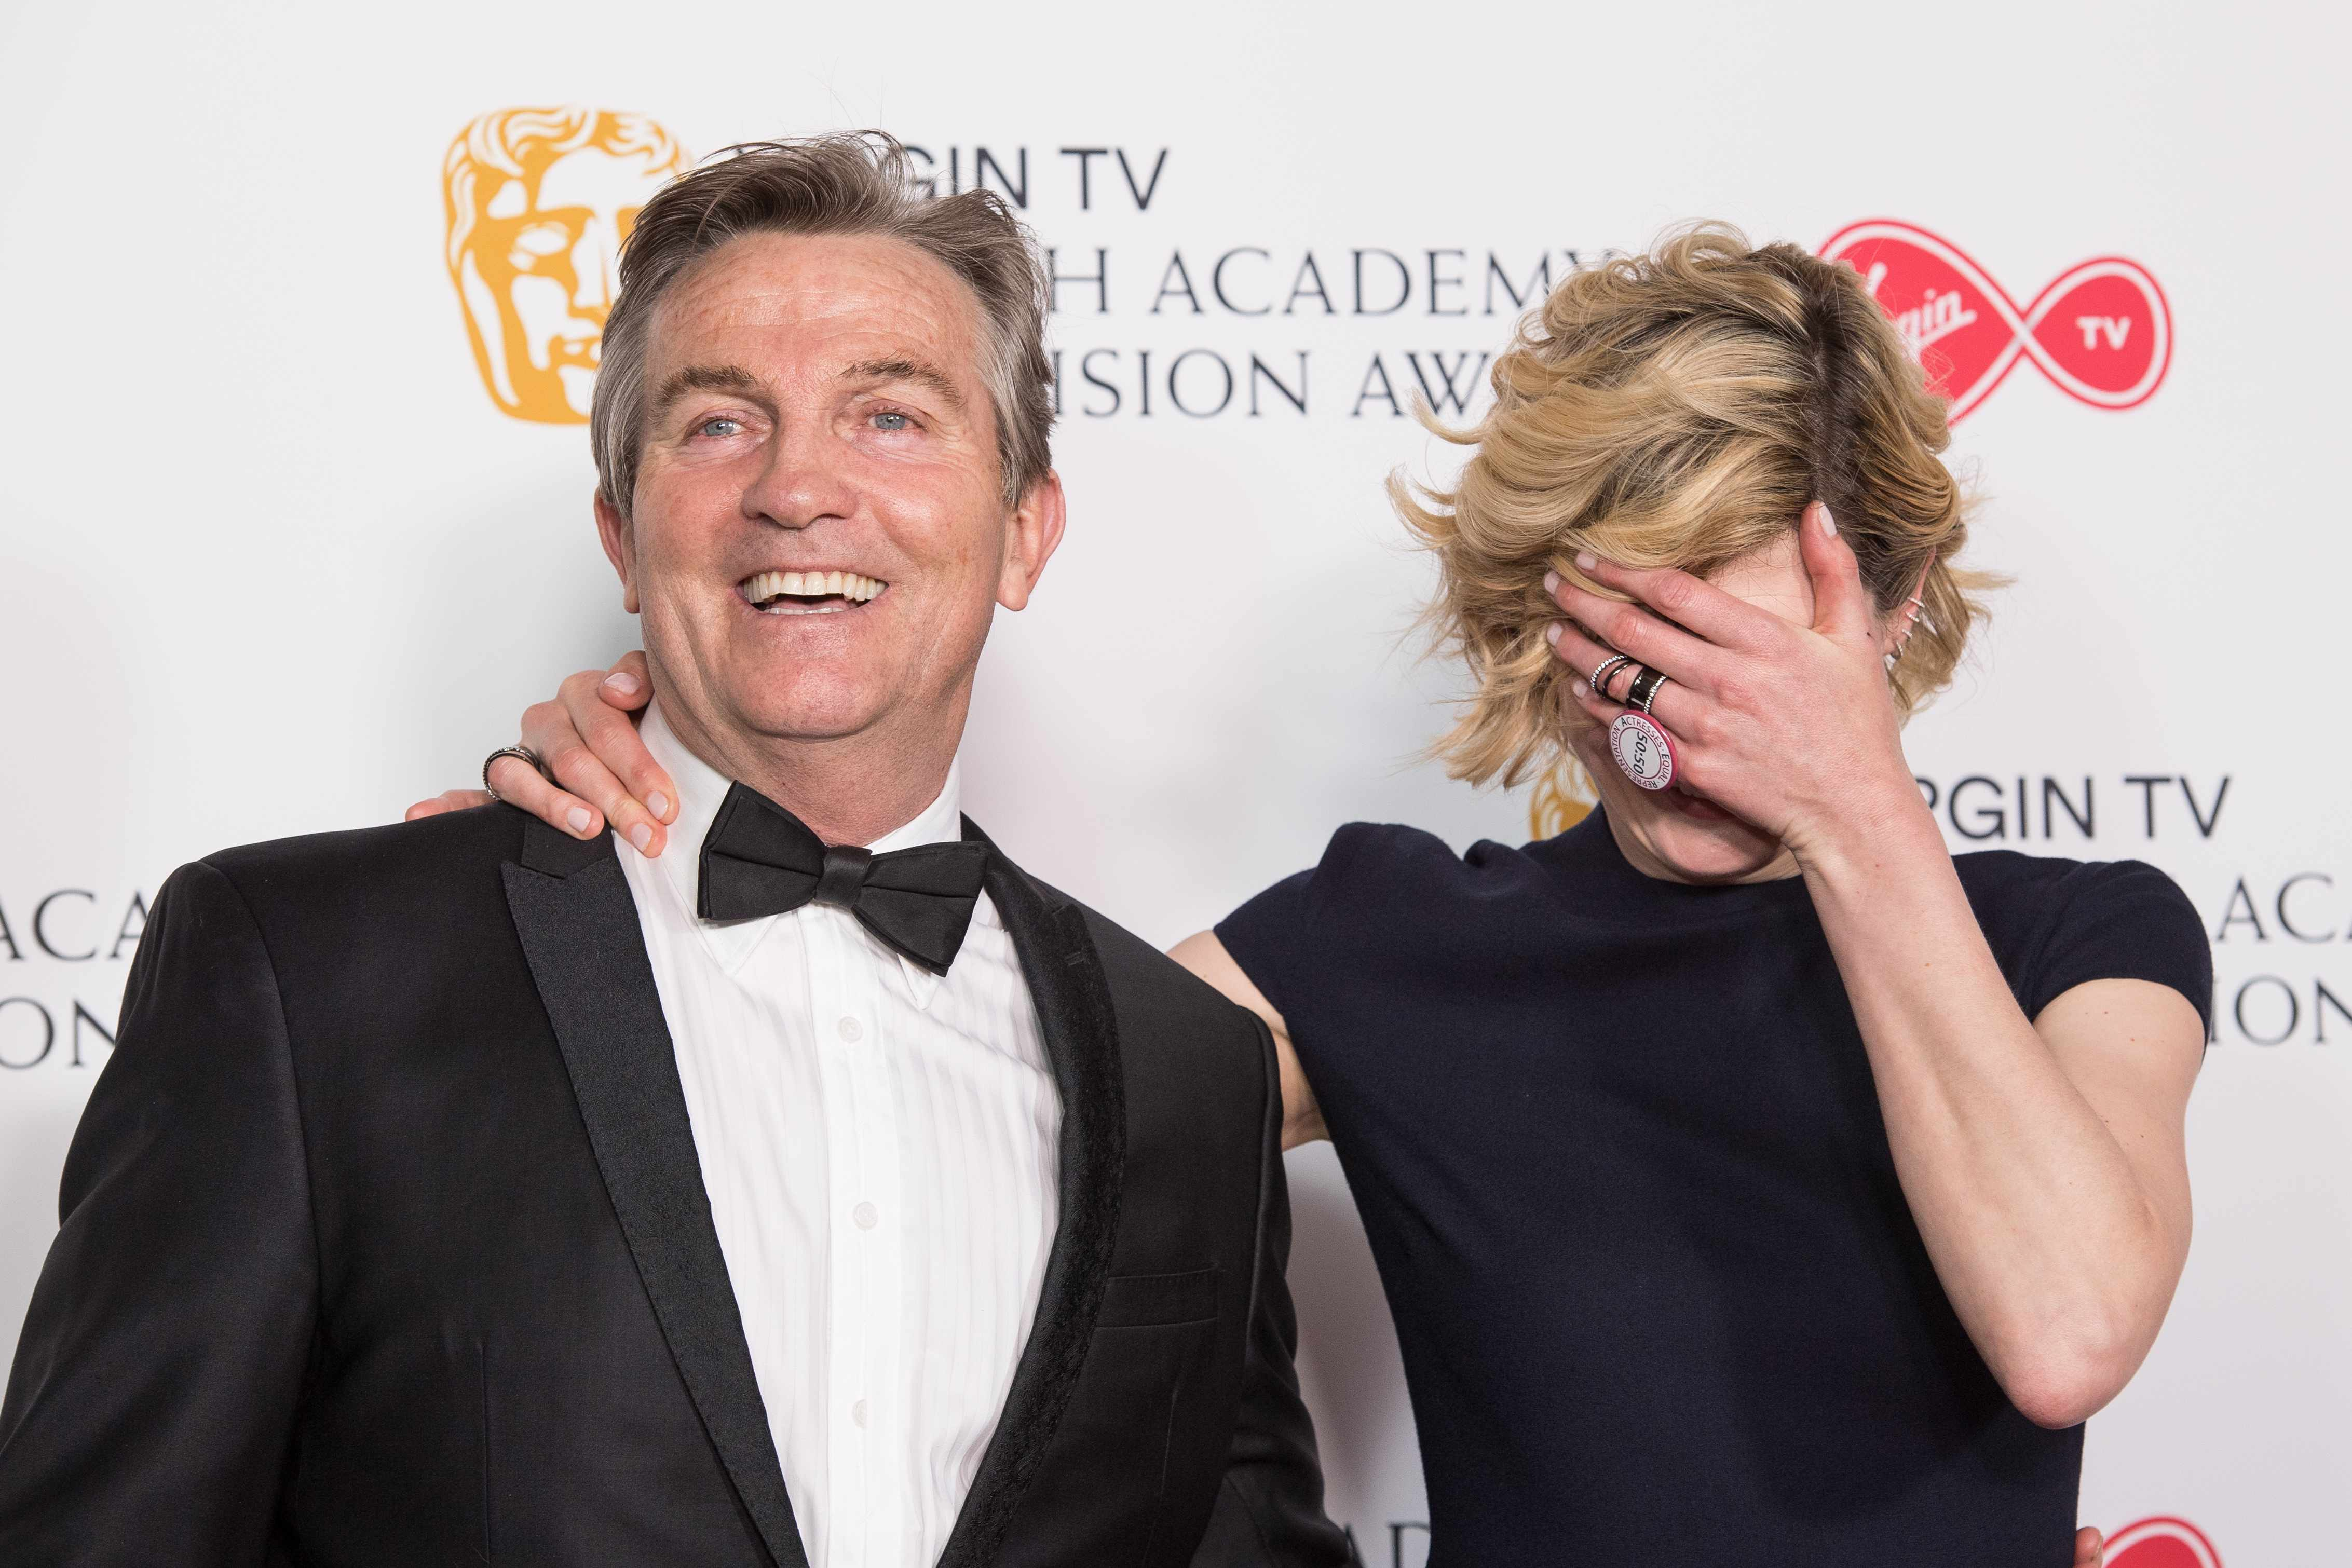 LONDON, ENGLAND - MAY 13:  (L-R)  Bradley Walsh and Jodie Whittaker pose in the press room at the Virgin TV British Academy Television Awards at The Royal Festival Hall on May 13, 2018 in London, England.  (Photo by Jeff Spicer/Getty Images)